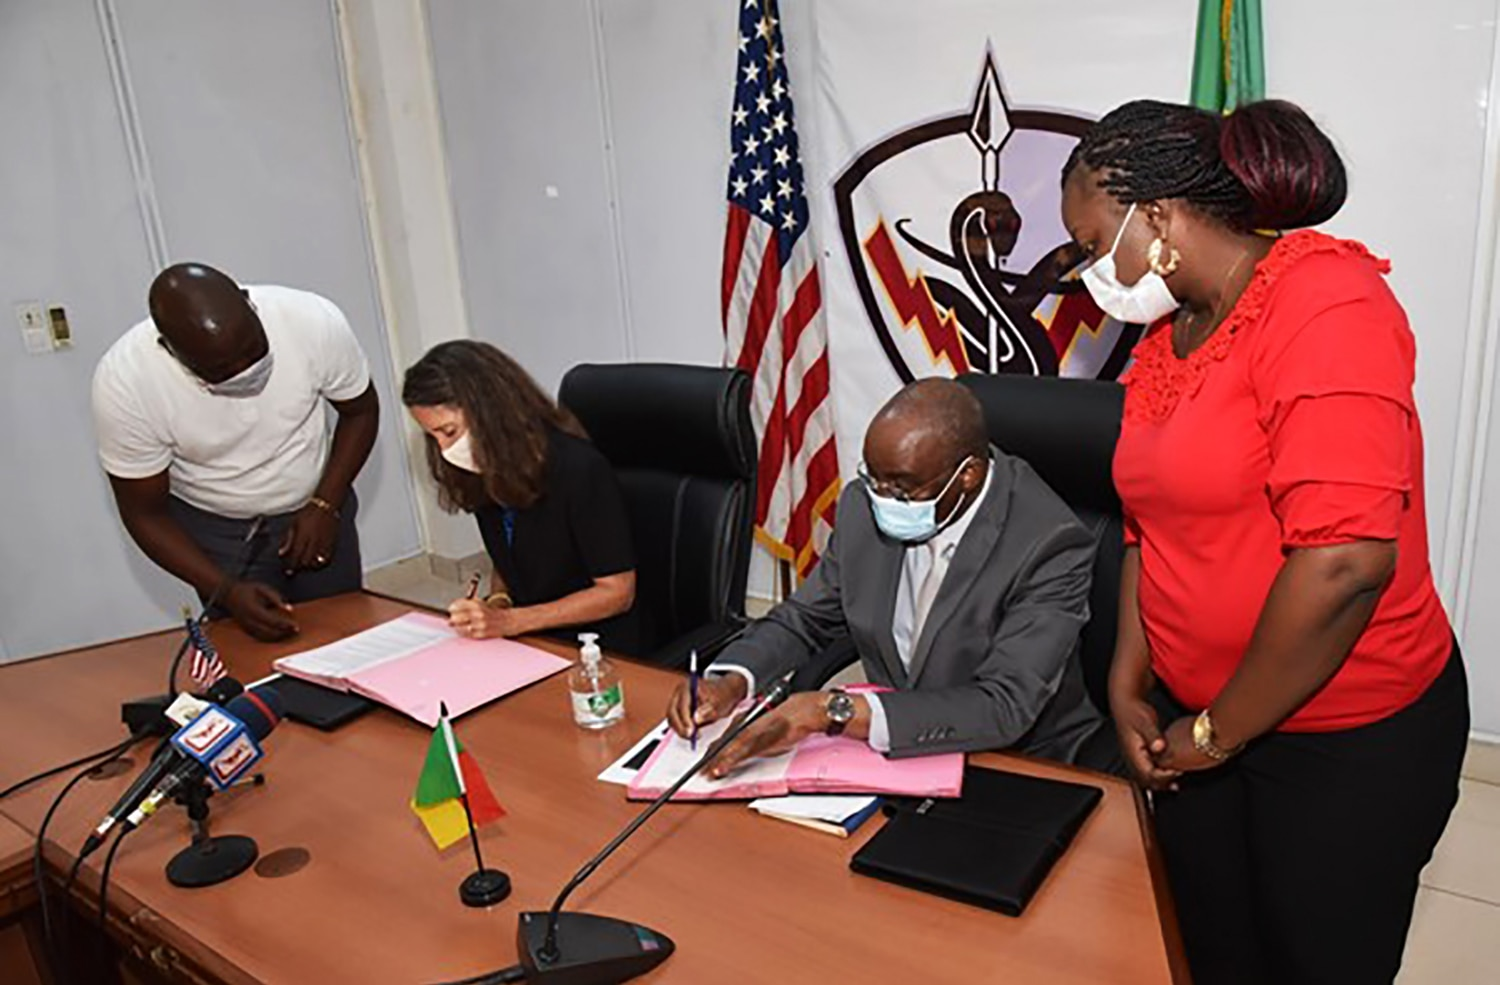 U.S. Ambassador to the Republic of Benin Patricia Mahoney(Second from left) and Benin's Minister of Interior Sacca Lafia(third from left) sign a letter of agreement formally establishing West Africa's non-high threat Special Program for Embassy Augmentation and Response (SPEAR) team, Cotonou, Benin October 1, 2020. (U.S. Department of State photo)